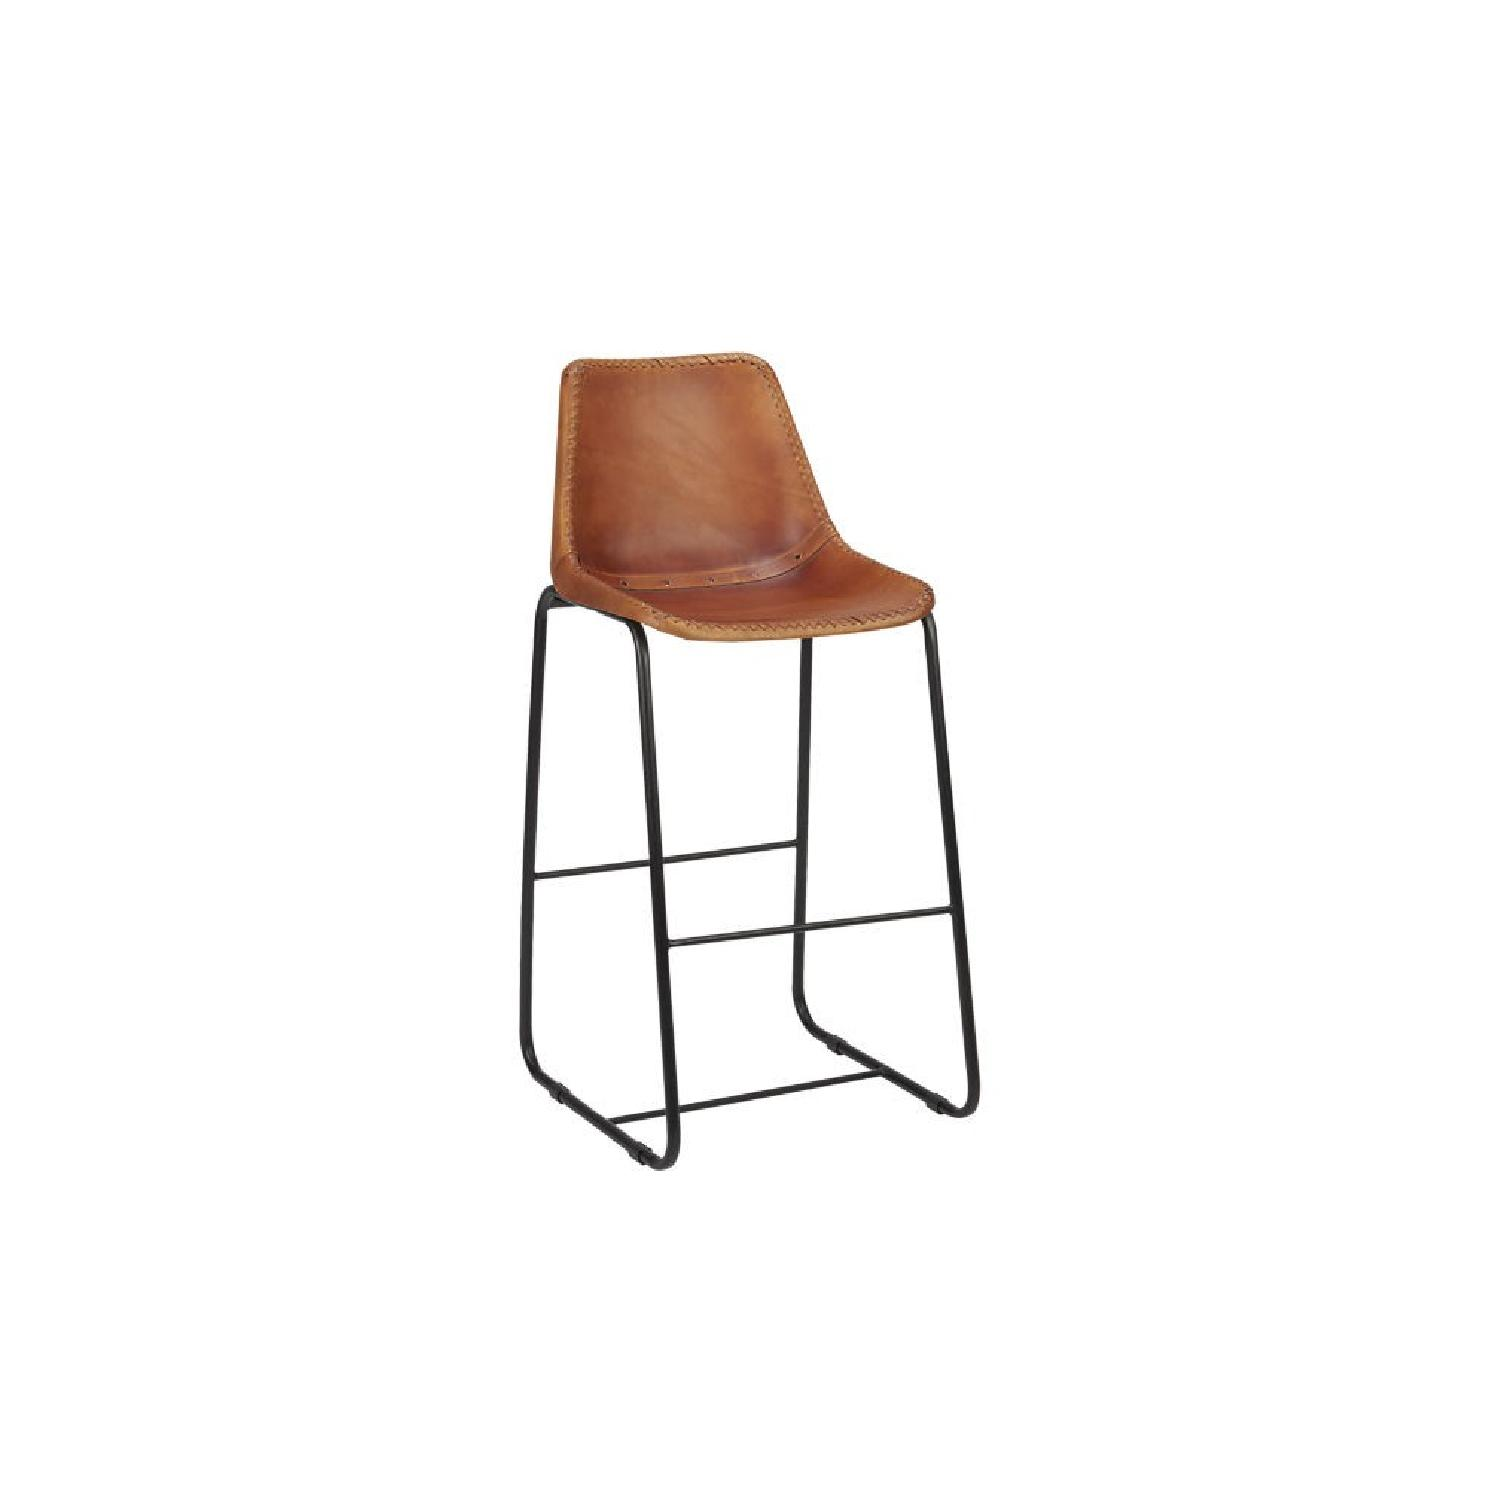 CB2 Roadhouse Leather Stool ...